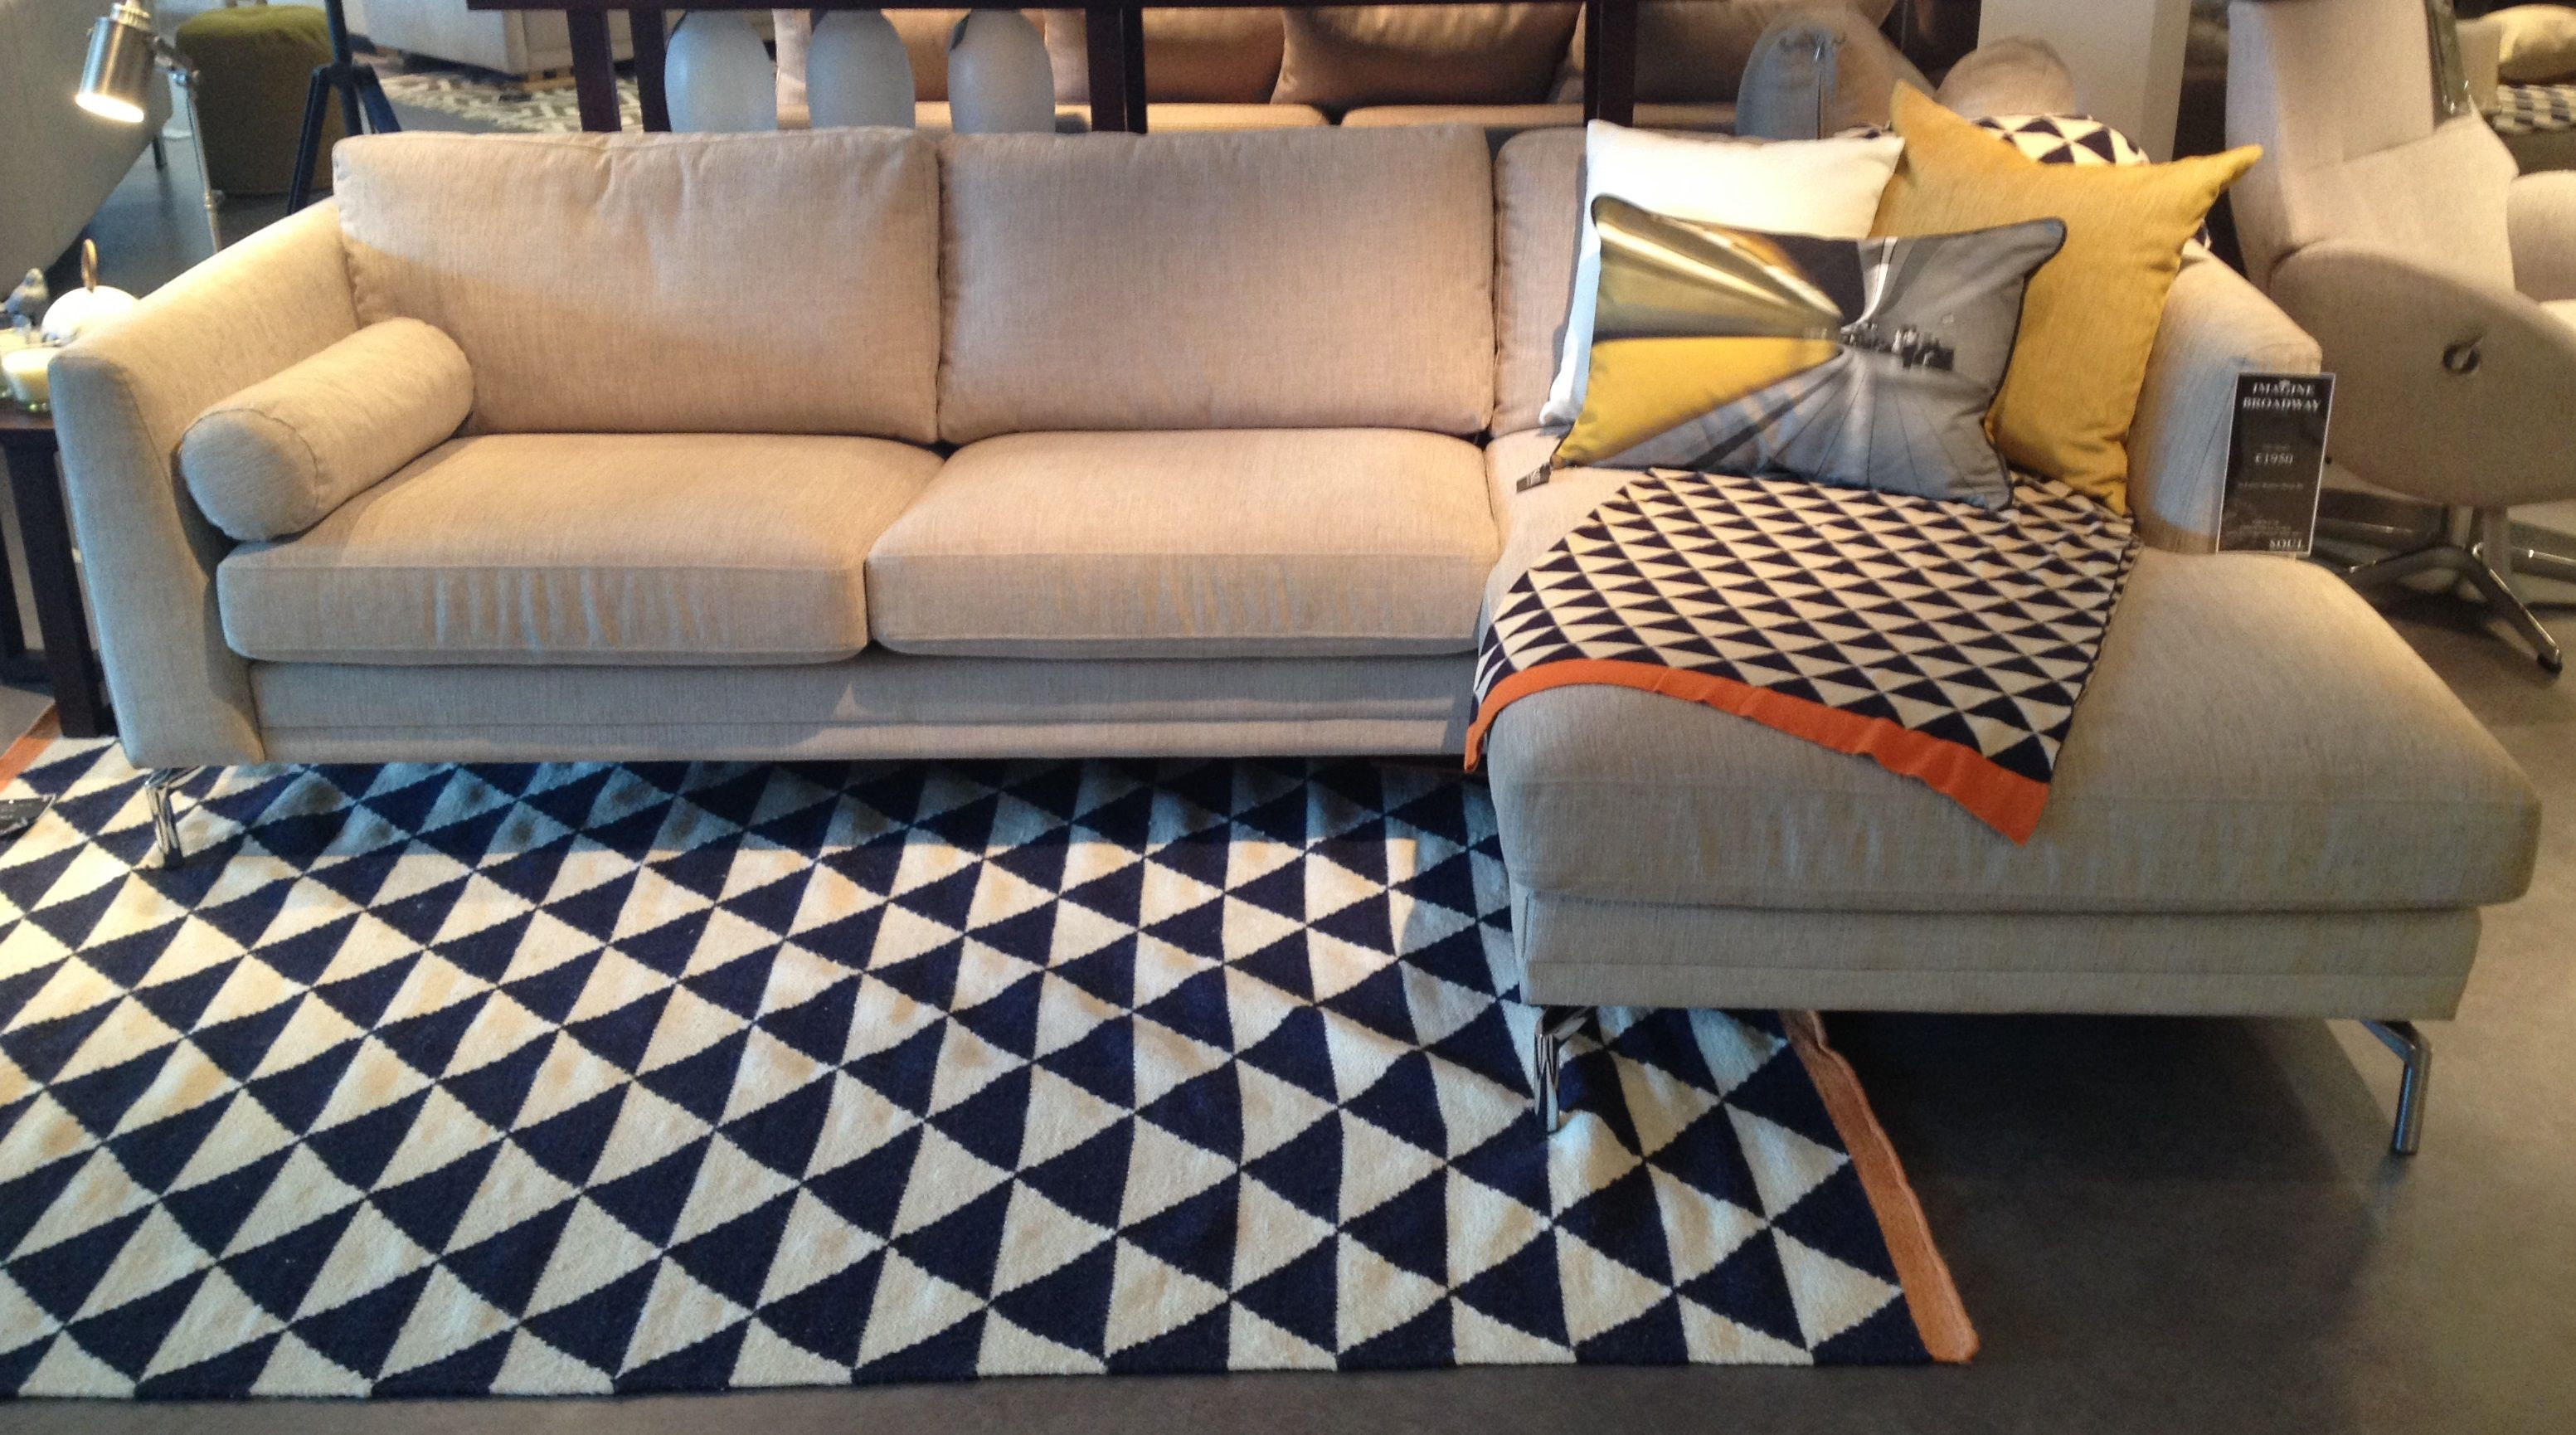 Soul Imagine Broadway Sofa With New Cushions Matching Throw Rug Living Room Love Seat Room